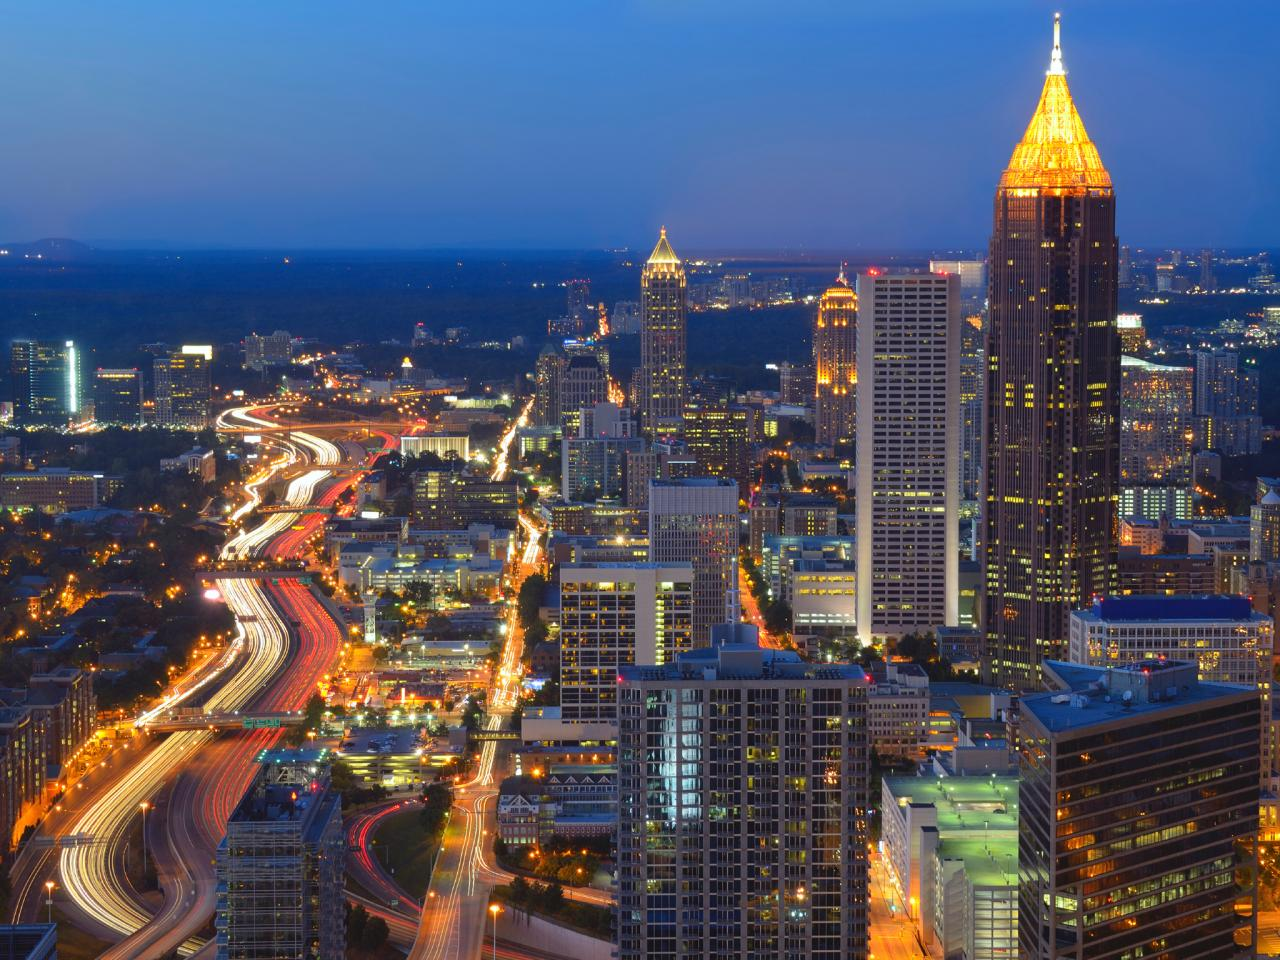 Don't spend your trip at an airport hotel or somewhere hours outside the city. The rental suites from Royal Living Group are located right in the heart of downtown Atlanta, so you can fully immerse yourself in one of the most bustling cities in the United States.Soak up the unique culture, food, and music of Atlanta just minutes from your doorstep! At the end of the day, you can return to a beautiful, fully furnished home and wind down by working out at the gym and relaxing in the sauna.To discover Atlanta furnished apartments that feel like home, choose the luxury suites from Royal Living Group. -